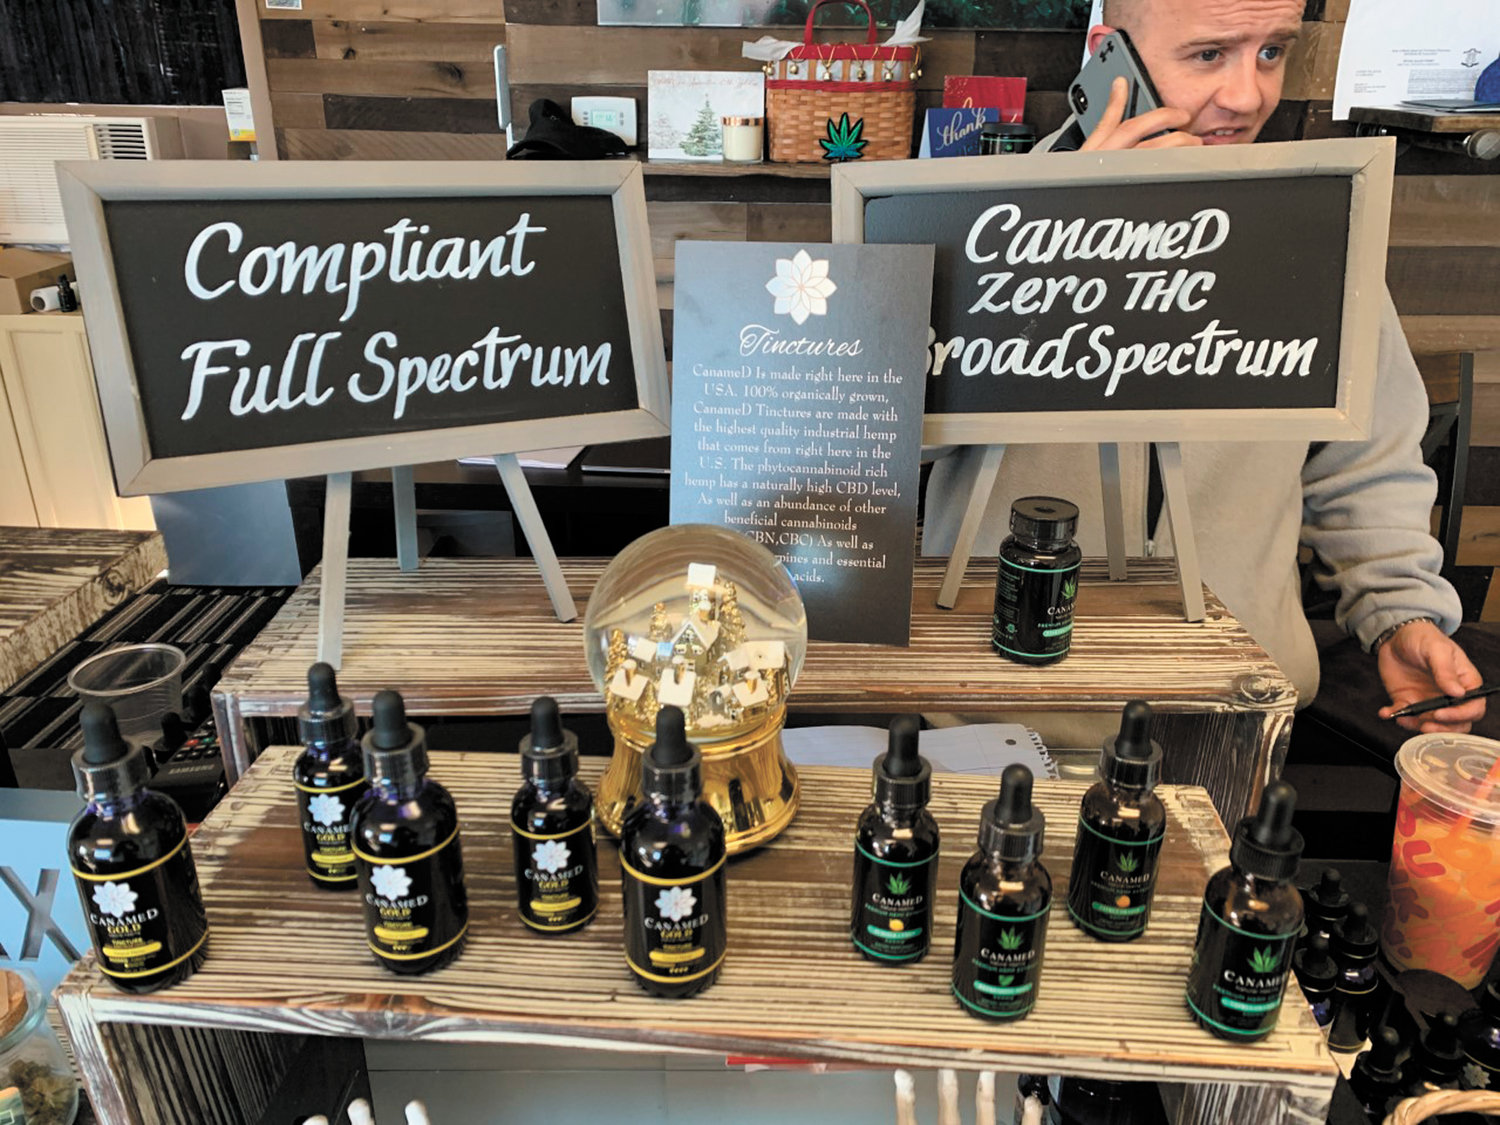 Michael Lanoue, the owner of The CBD Store, is proud to showcase his newest, 100% organic CBD product line, CanameD®Gold ~ now available at his flagship store on Post Road in Warwick and at the CBD Boutique in Wakefield. Call for more information at 401-360-7093.